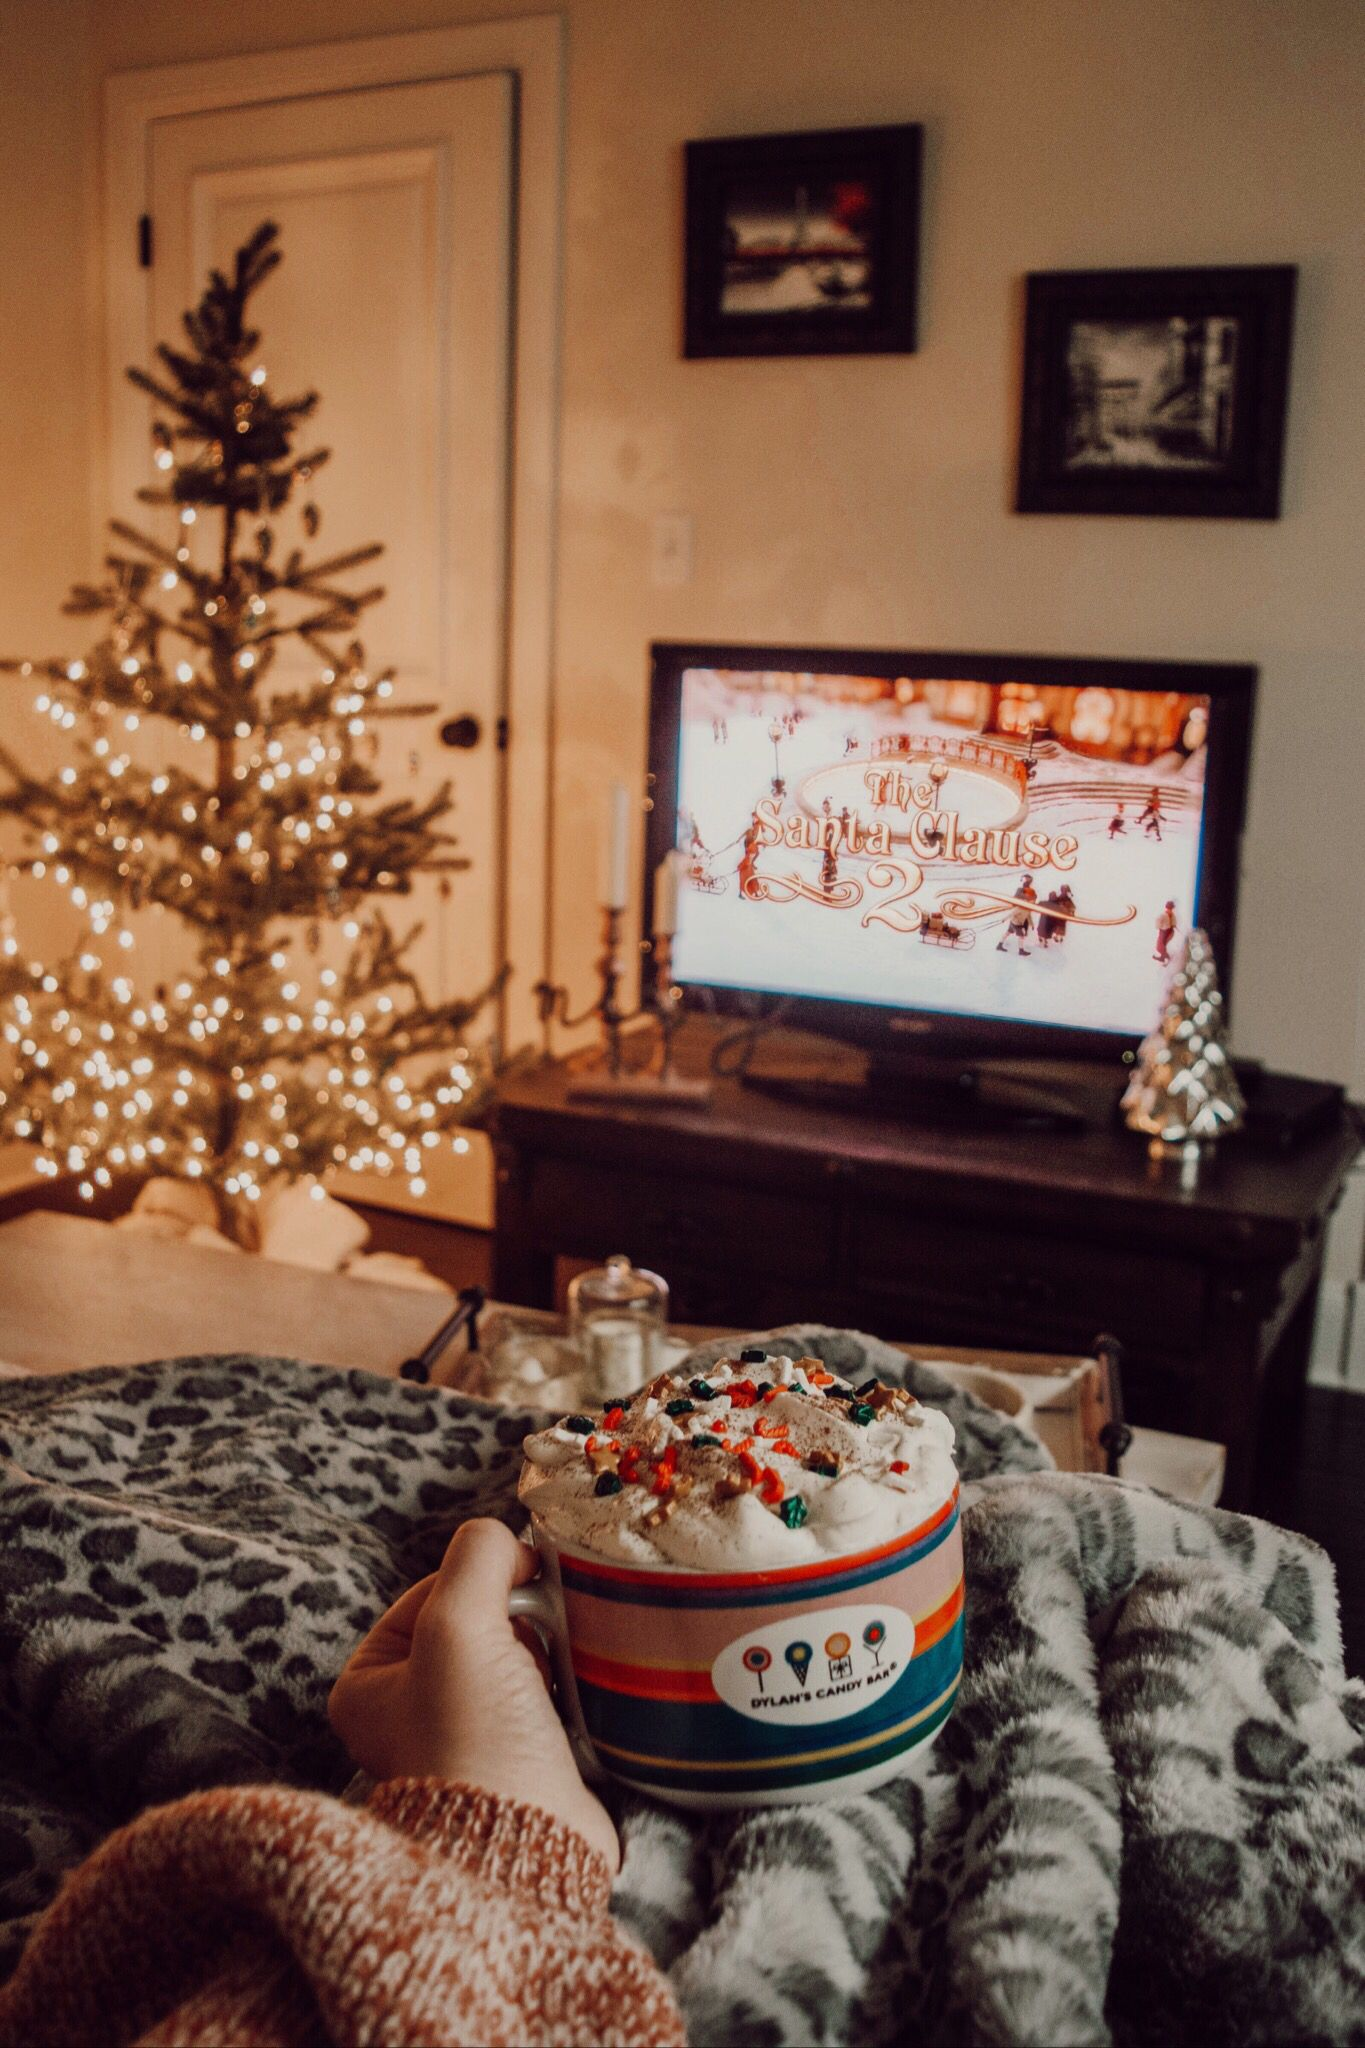 The Grinch And 9 Other Amazing Christmas Movies To Watch With Your Family This Holiday Season The Bes Christmas Aesthetic Cozy Christmas Best Christmas Movies